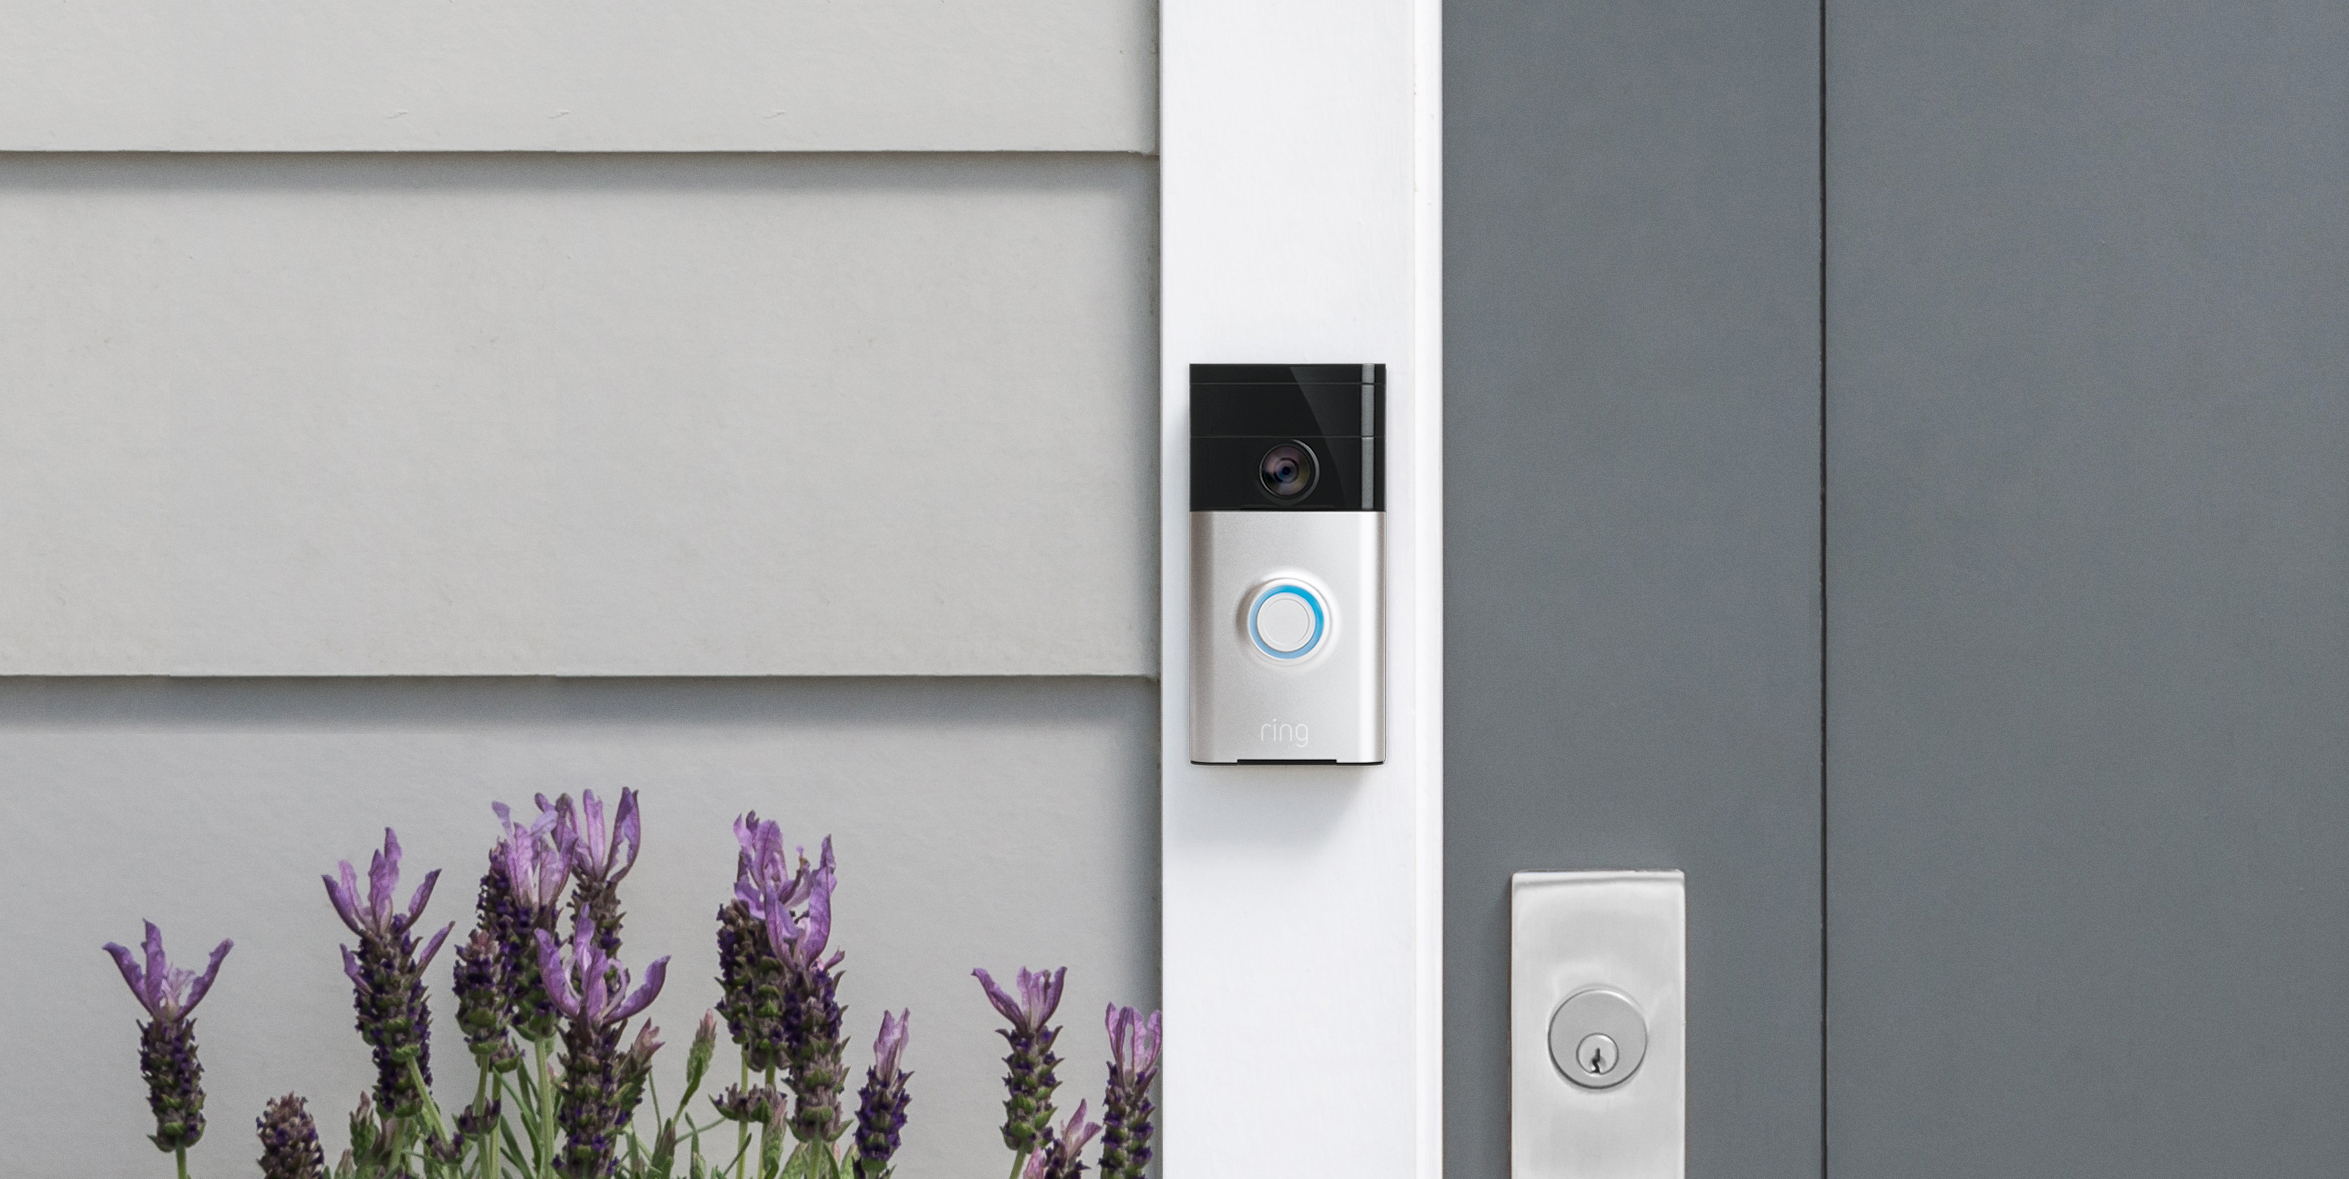 Gadget Review: Ring Home Security System